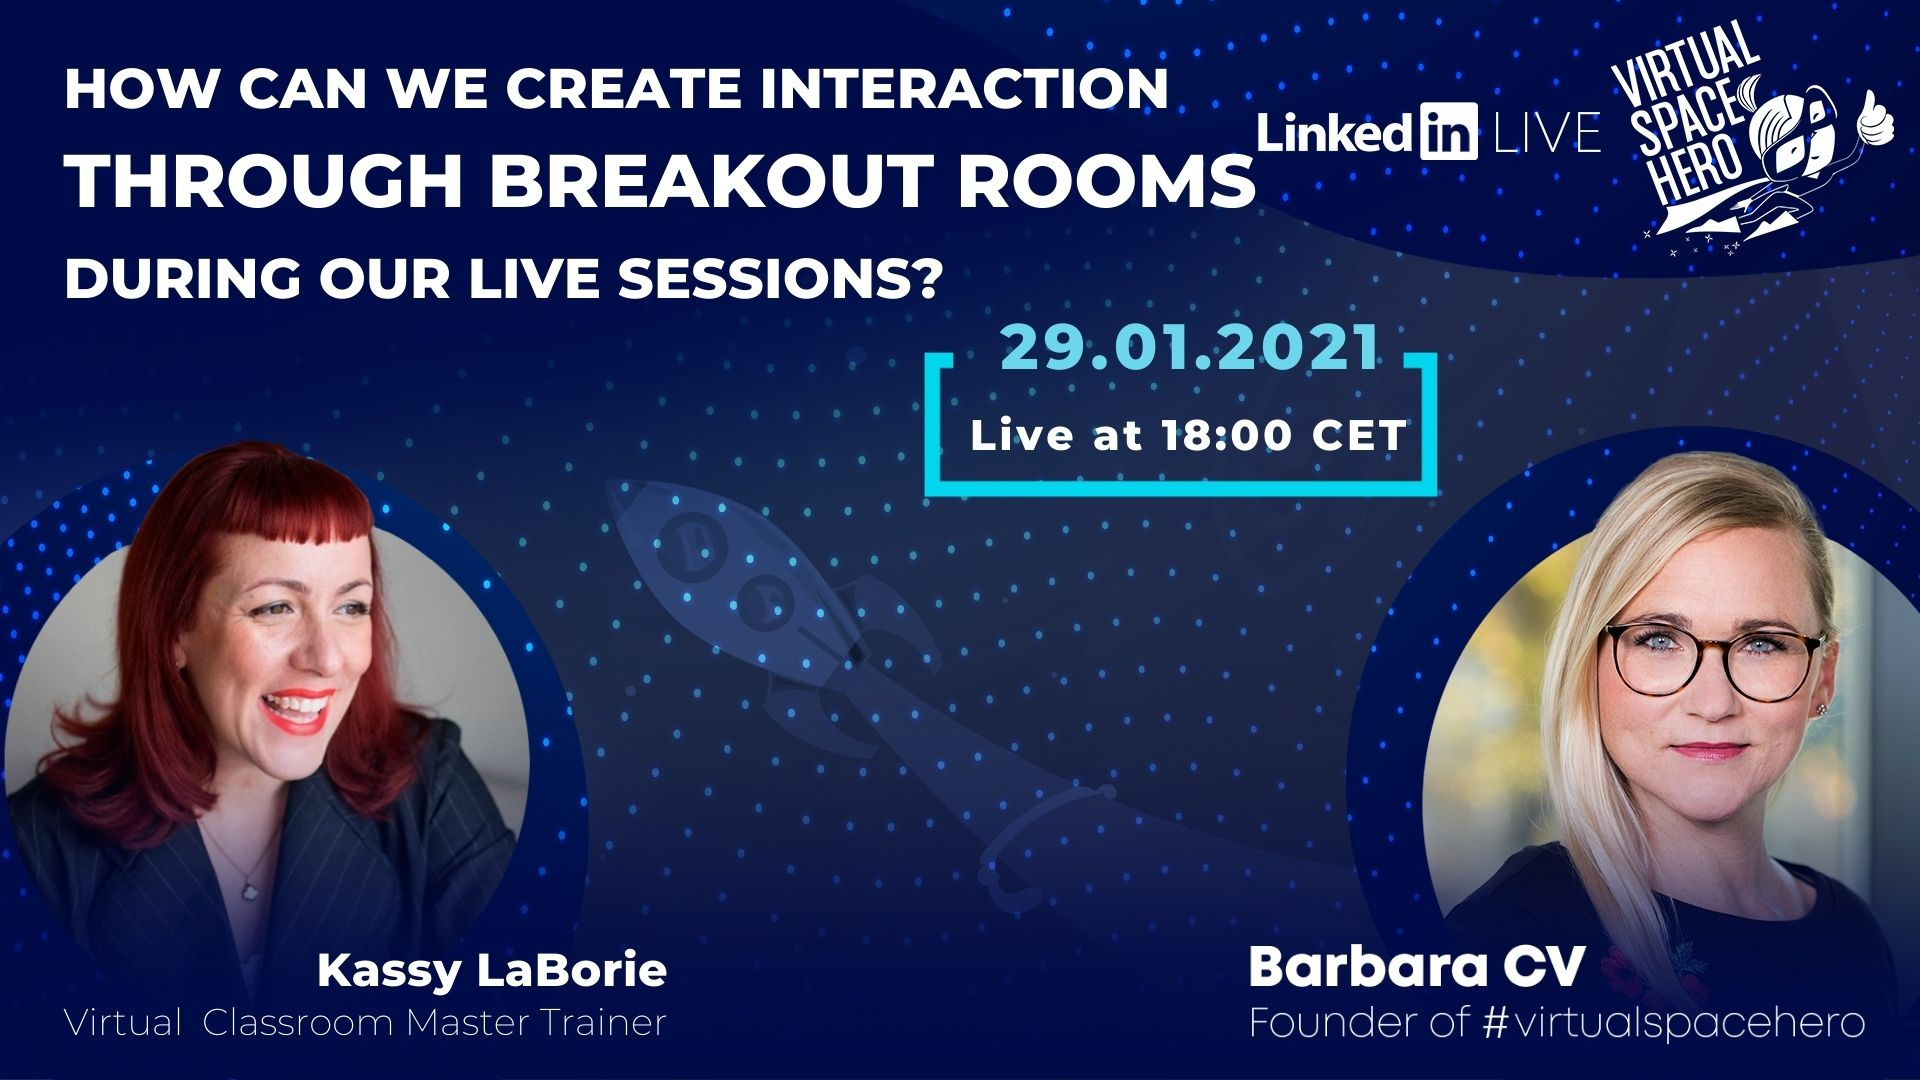 How can we create interaction with breakout rooms in our virtual live sessions?